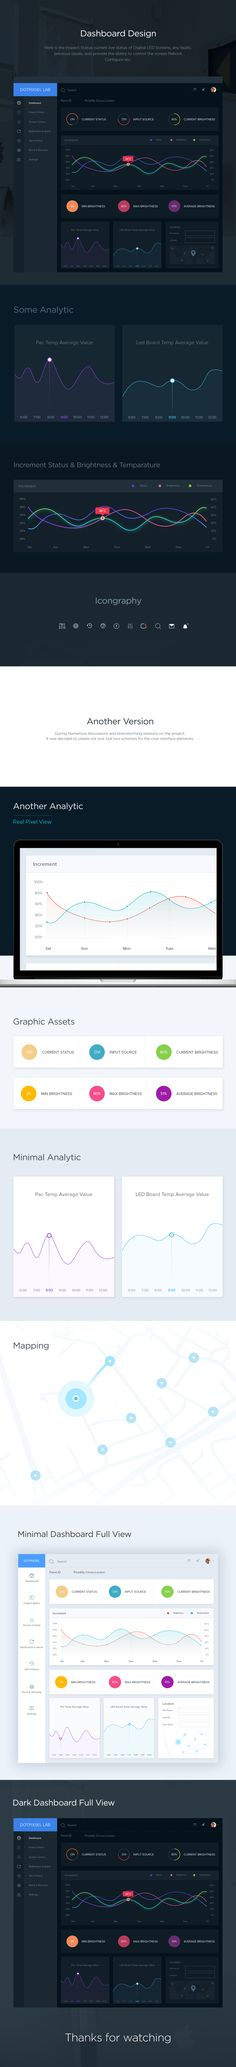 Dashboard Design on Behance